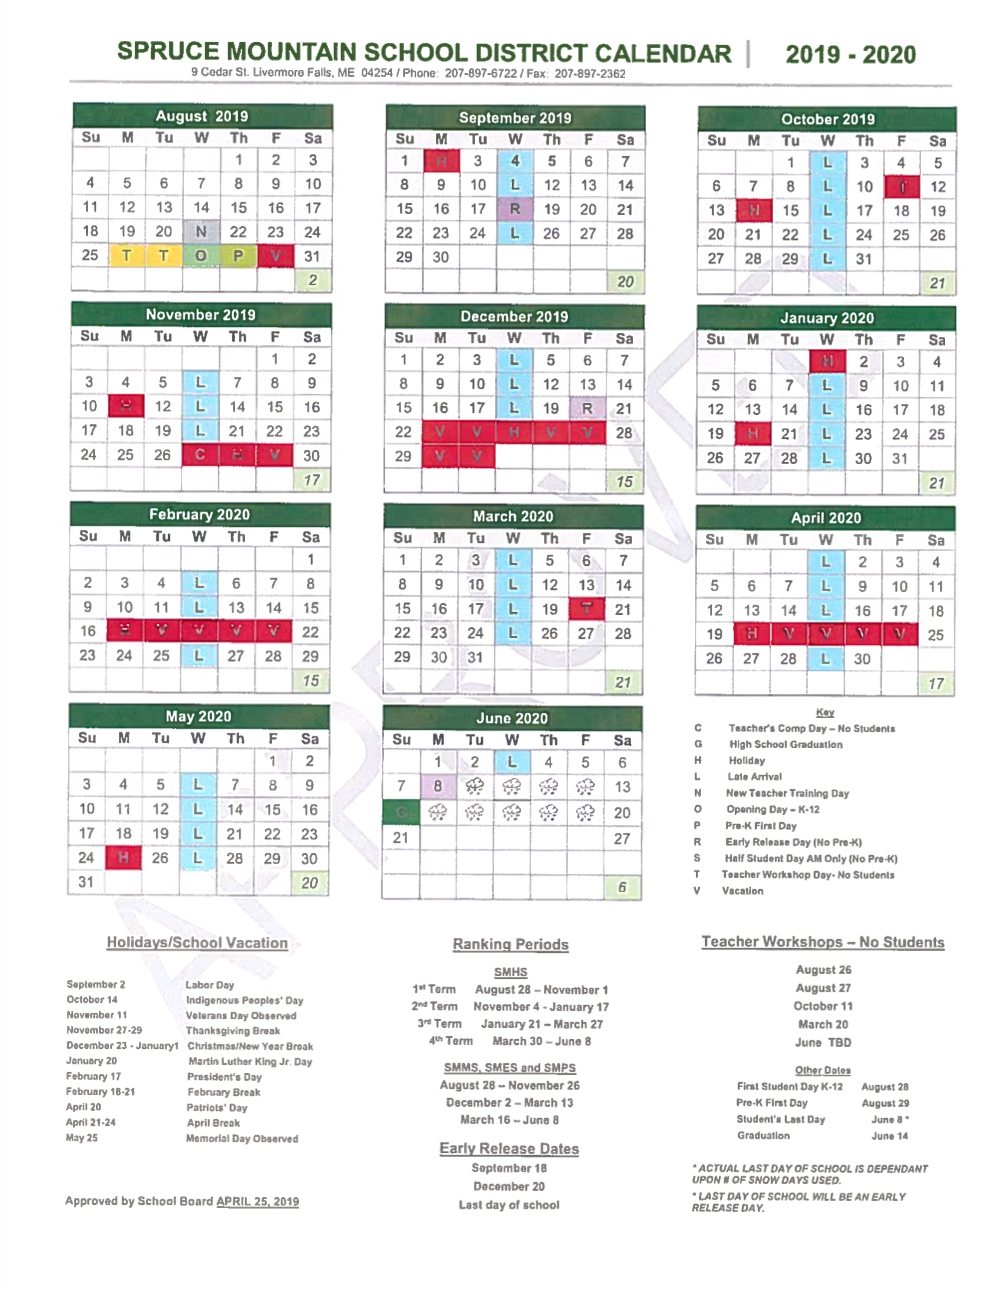 School Year Calendar - Spruce Mountain School District regarding Livermore School District Calander